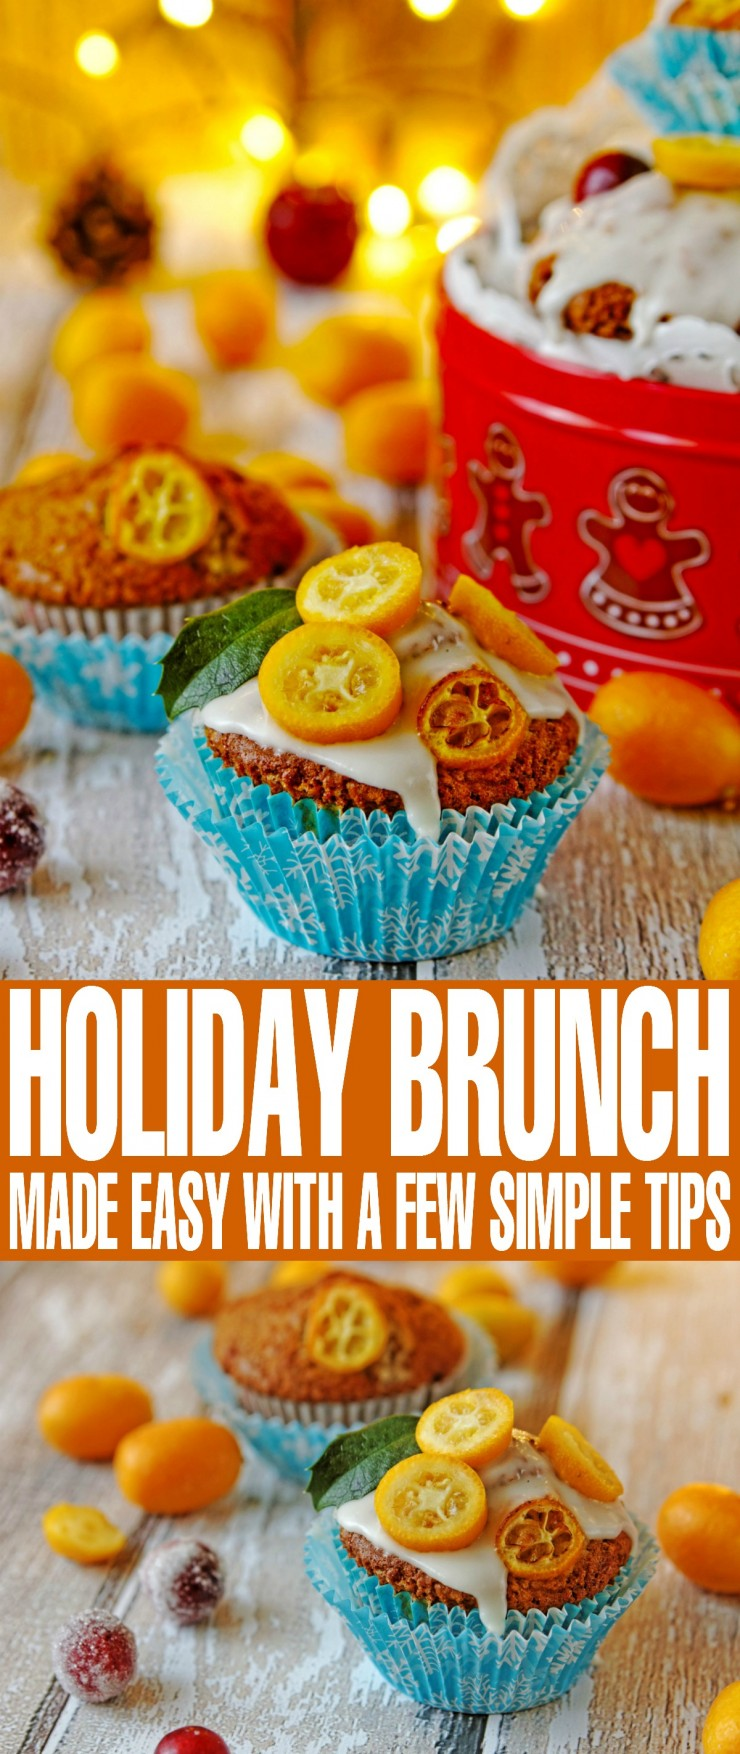 Have a Picture Perfect Holiday Brunch: Entertaining Made Easy with a Few Simple Tips